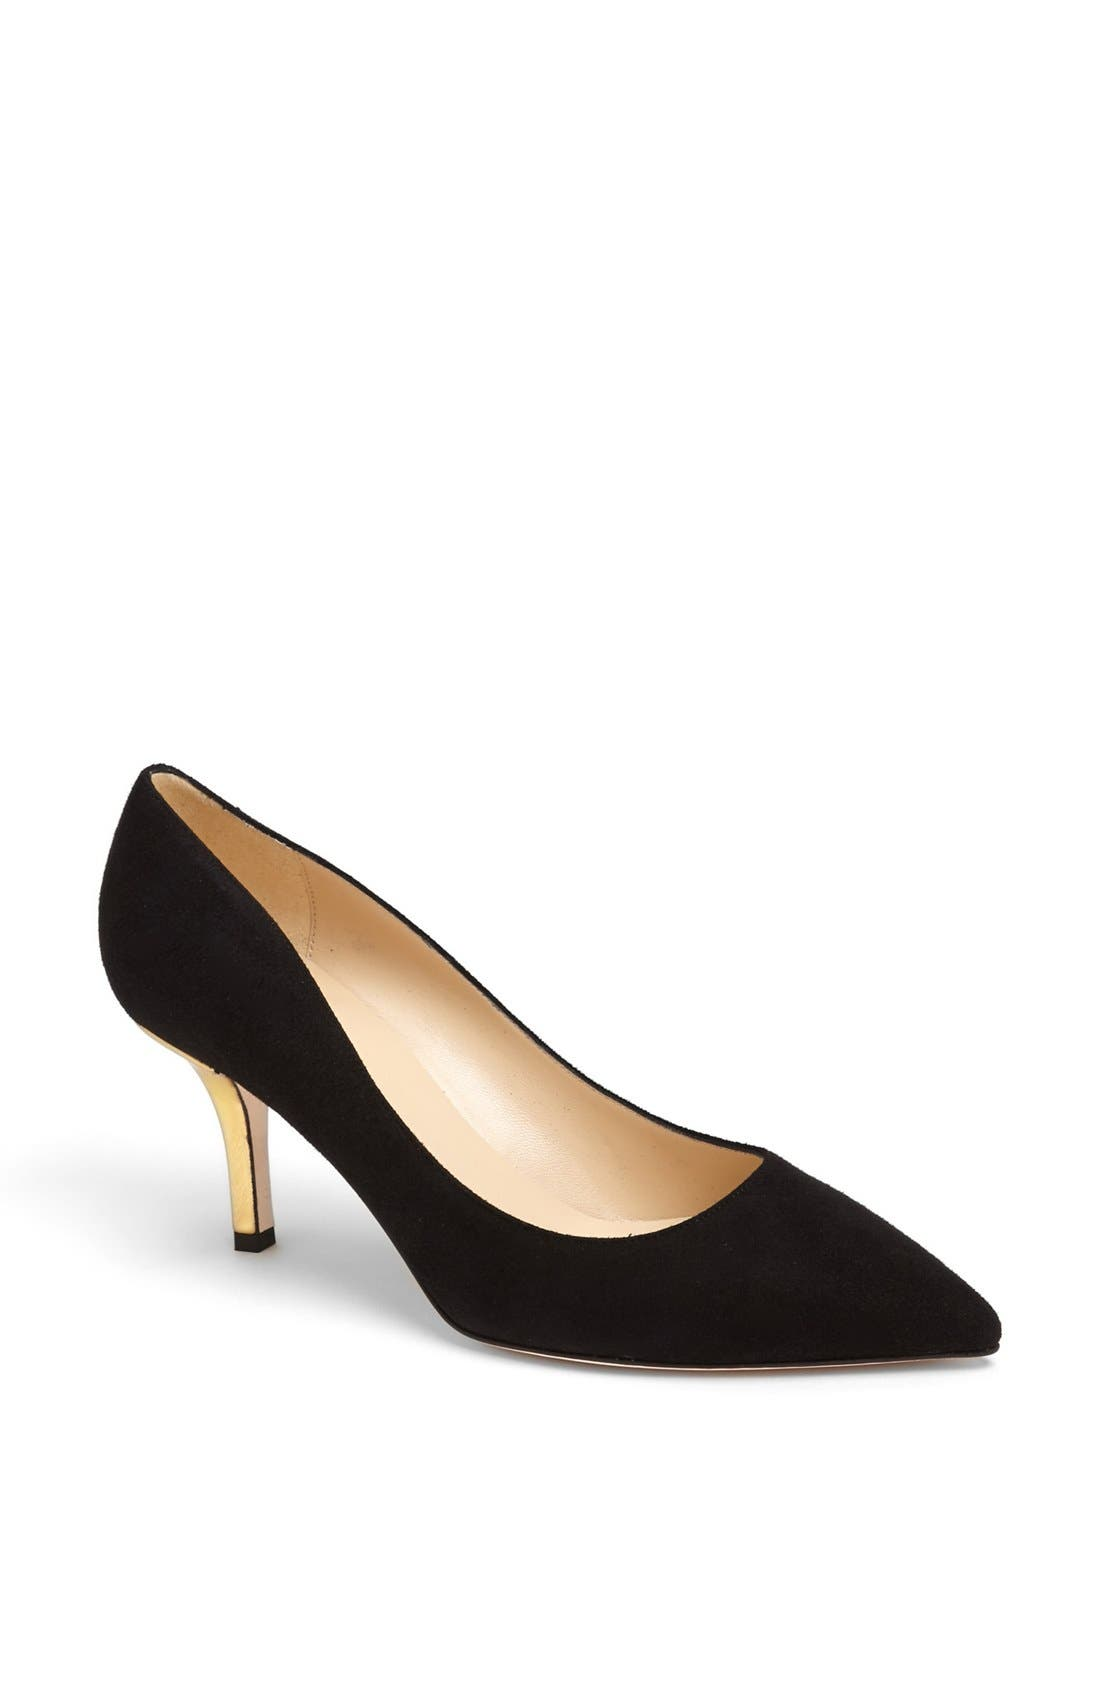 Alternate Image 1 Selected - kate spade new york 'jess' pump